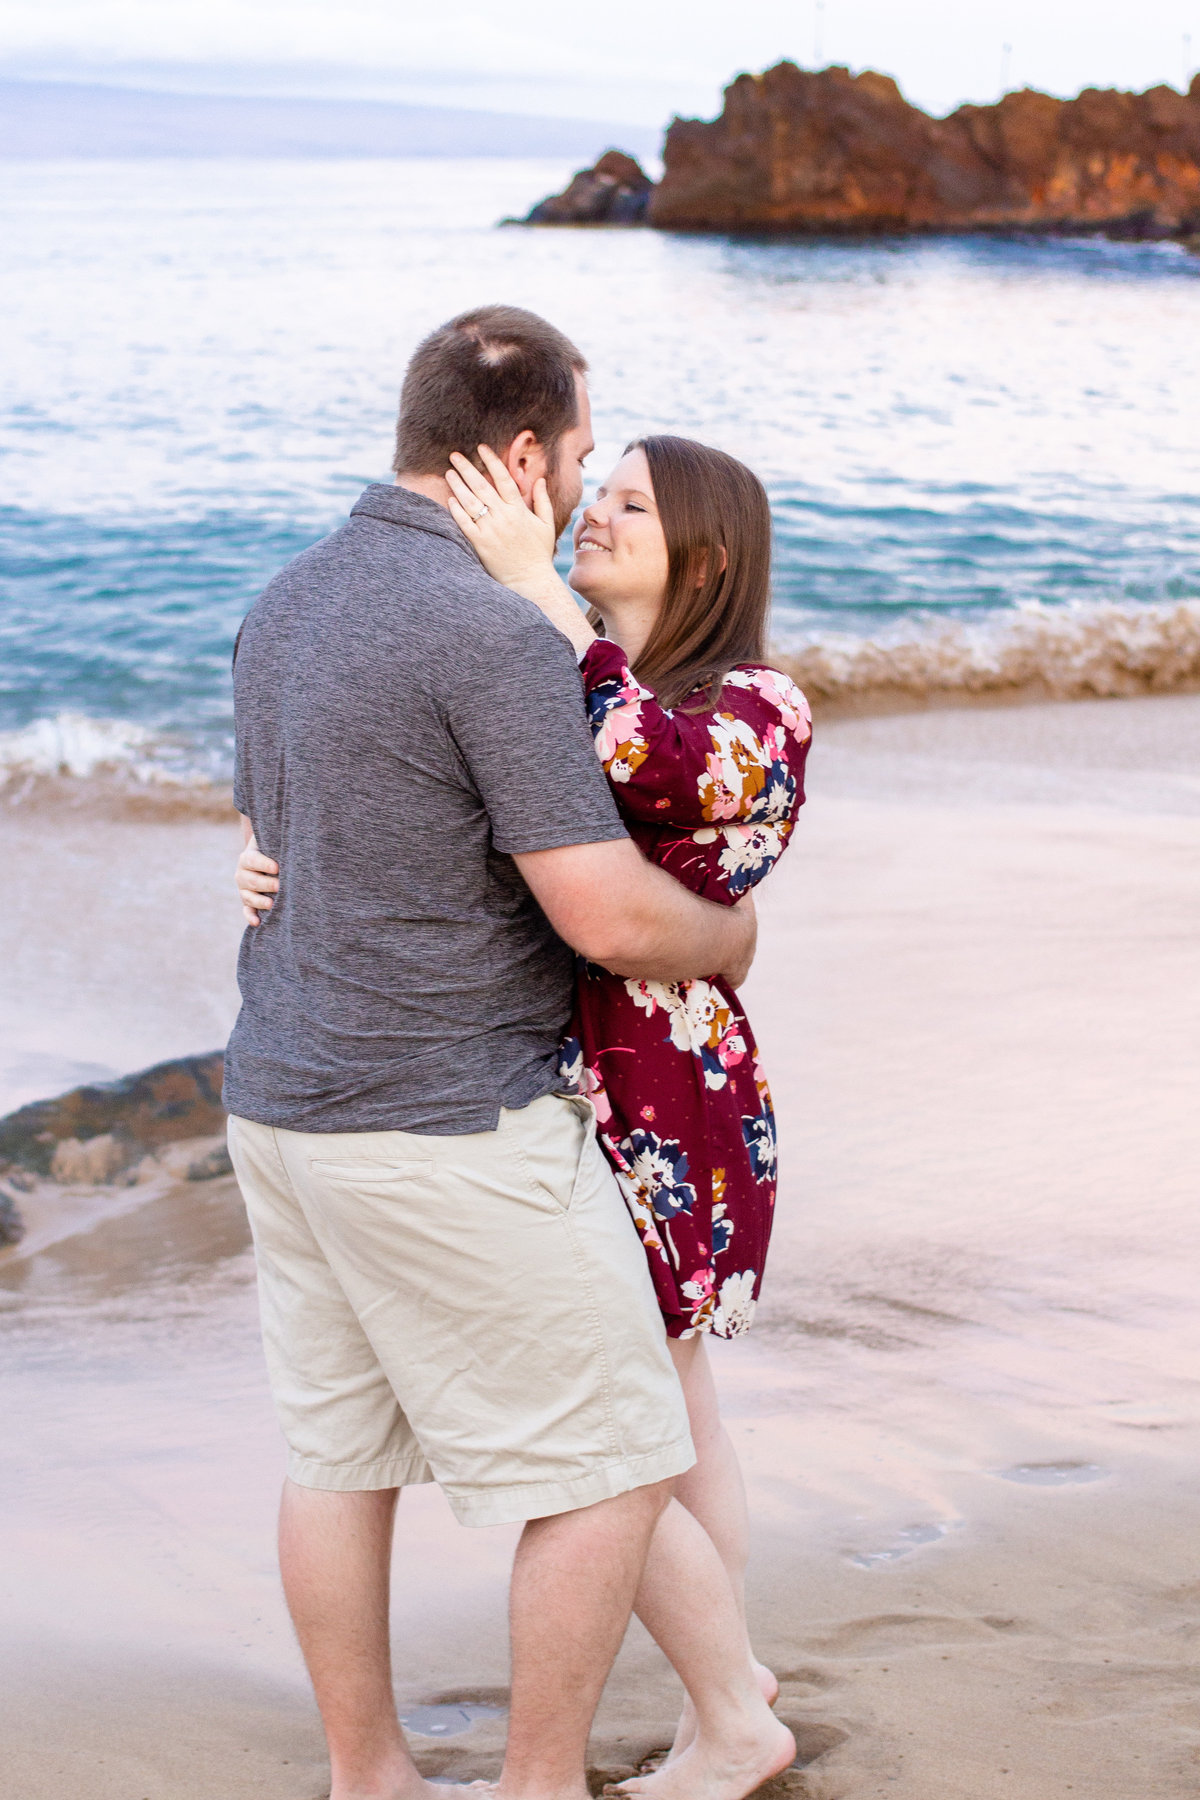 Couple looks at one another on beach in Maui, Hawaii during their destination engagement session